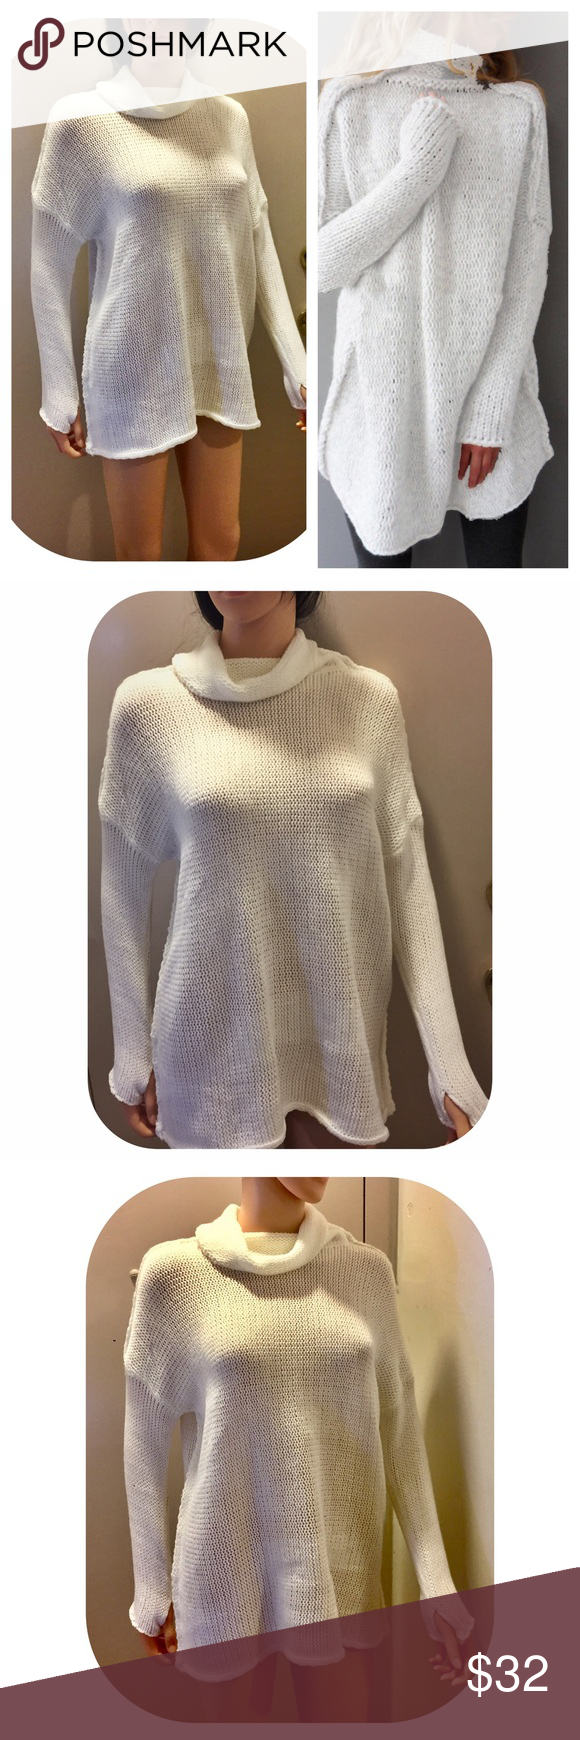 White Oversized Cowl Neck Sweater Boutique | Knit cowl, Cowl neck ...